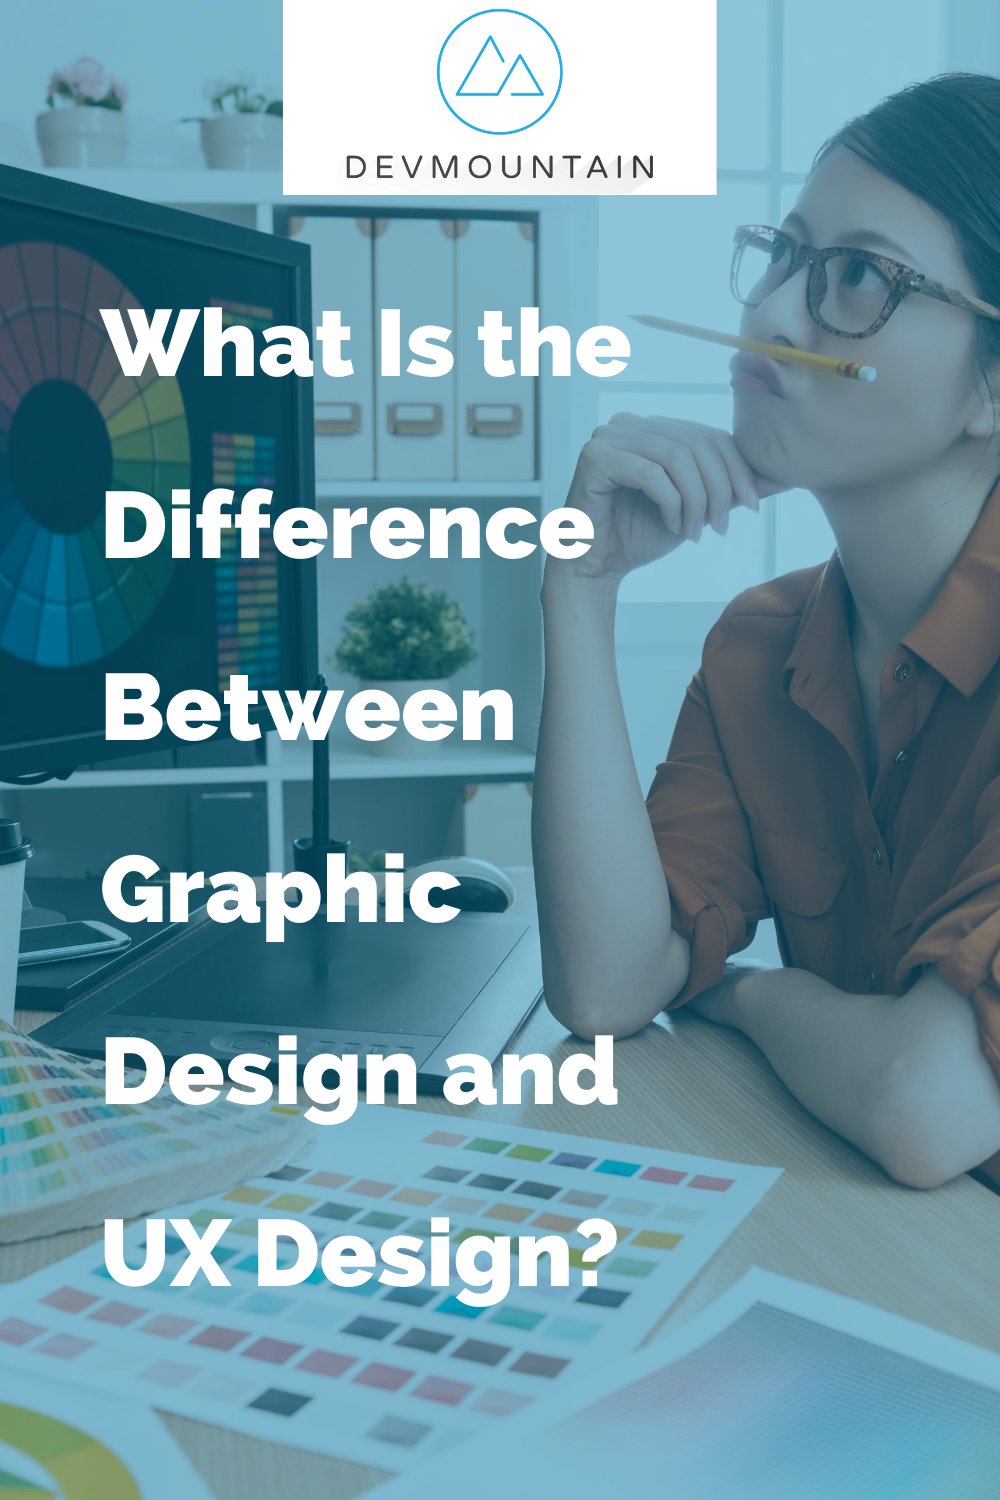 What Is the Difference Between Graphic Design and UX Design?